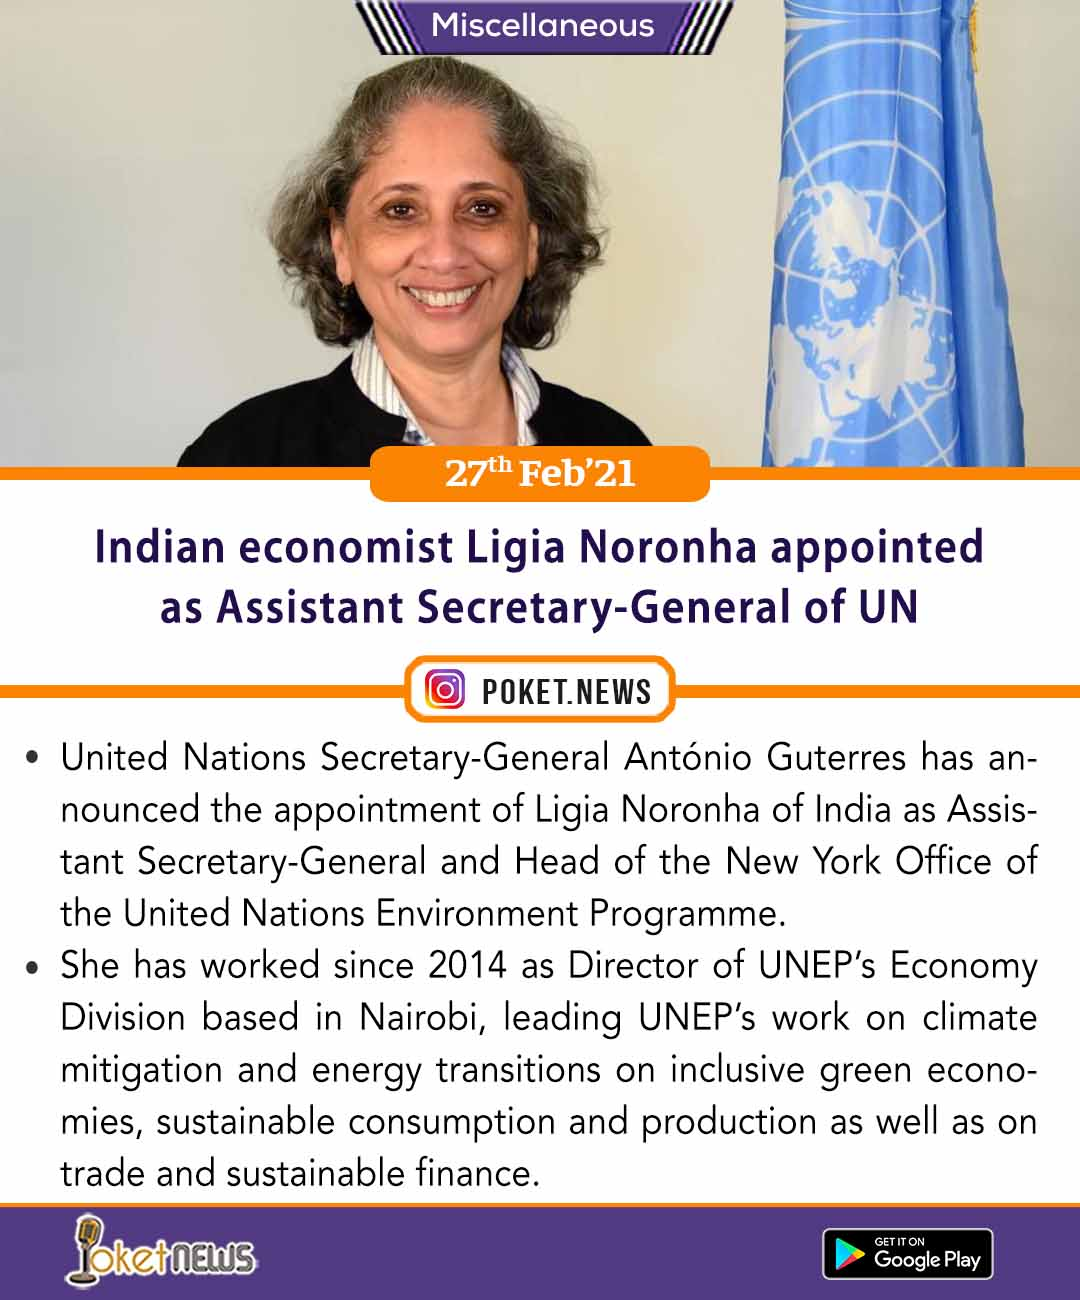 Indian economist Ligia Noronha appointed as Assistant Secretary-General of UN